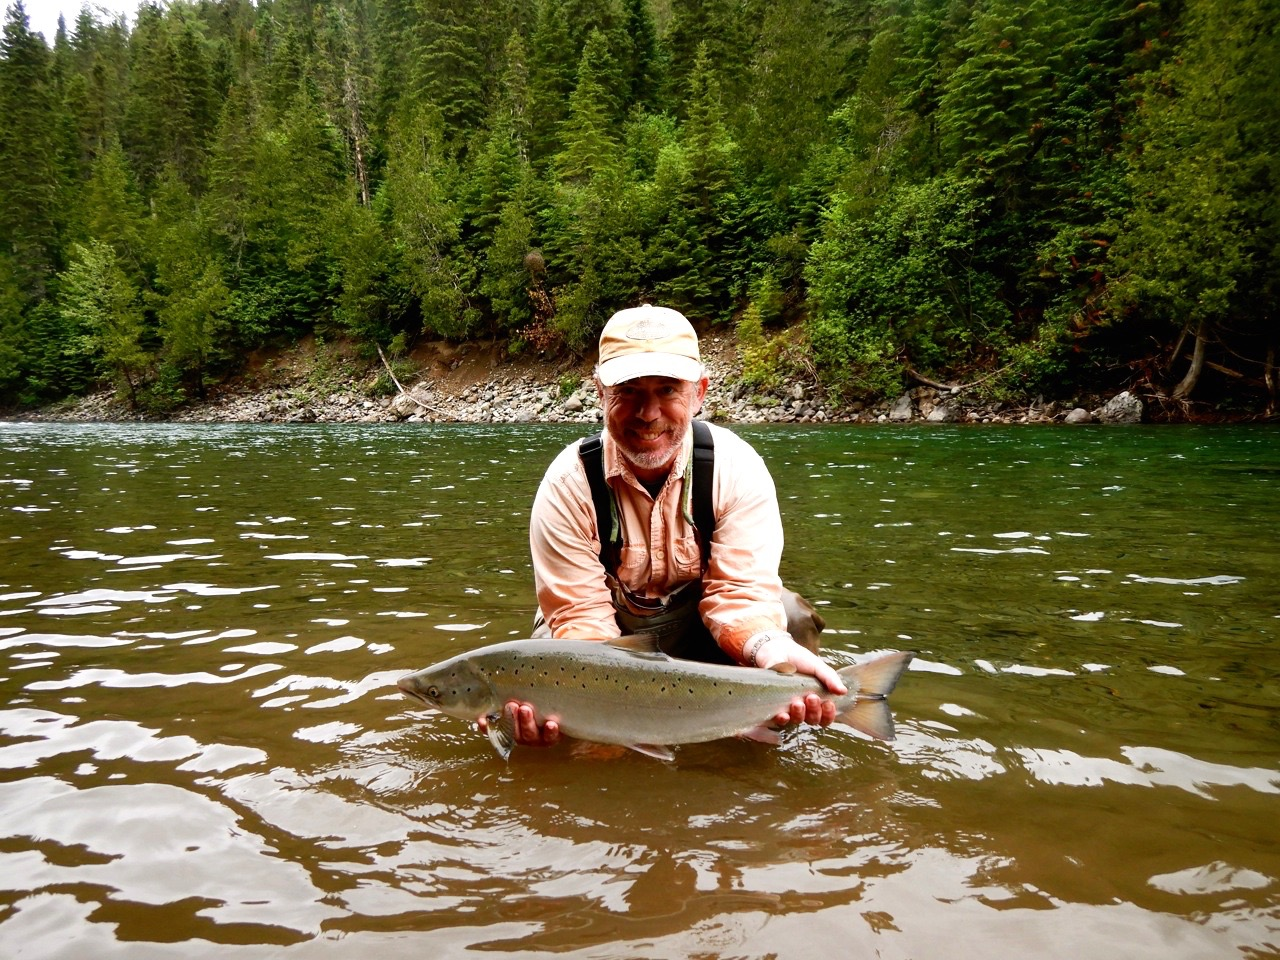 Long time Salmon Lodge guest John Pearson, a great guy and angler, nice one John!